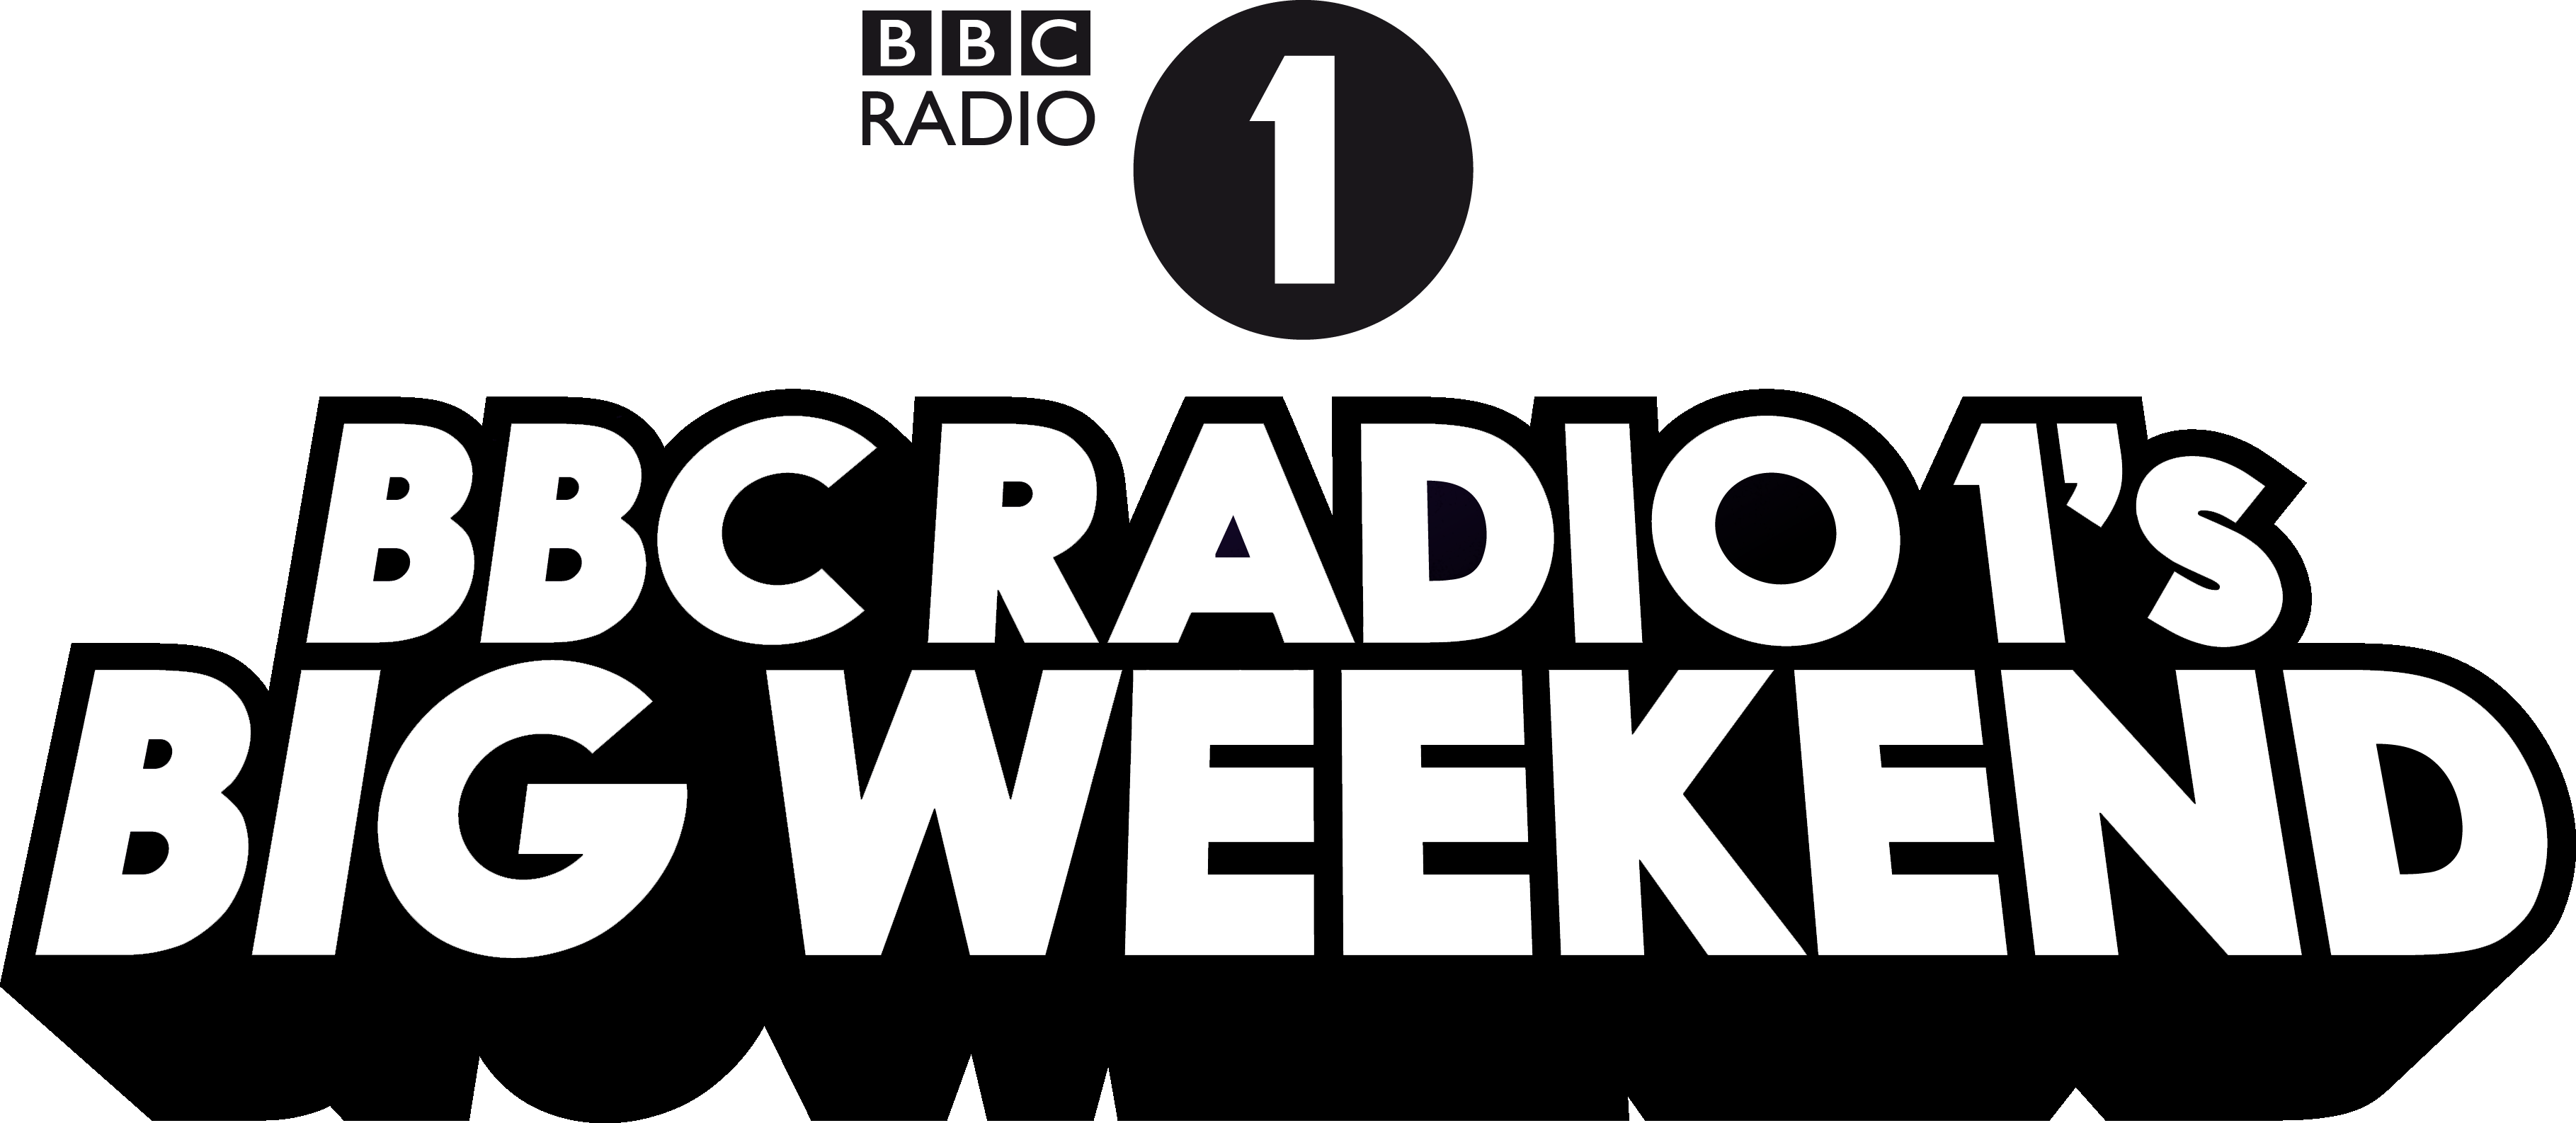 BBC-Radio-1s-Big-Weekend-logo